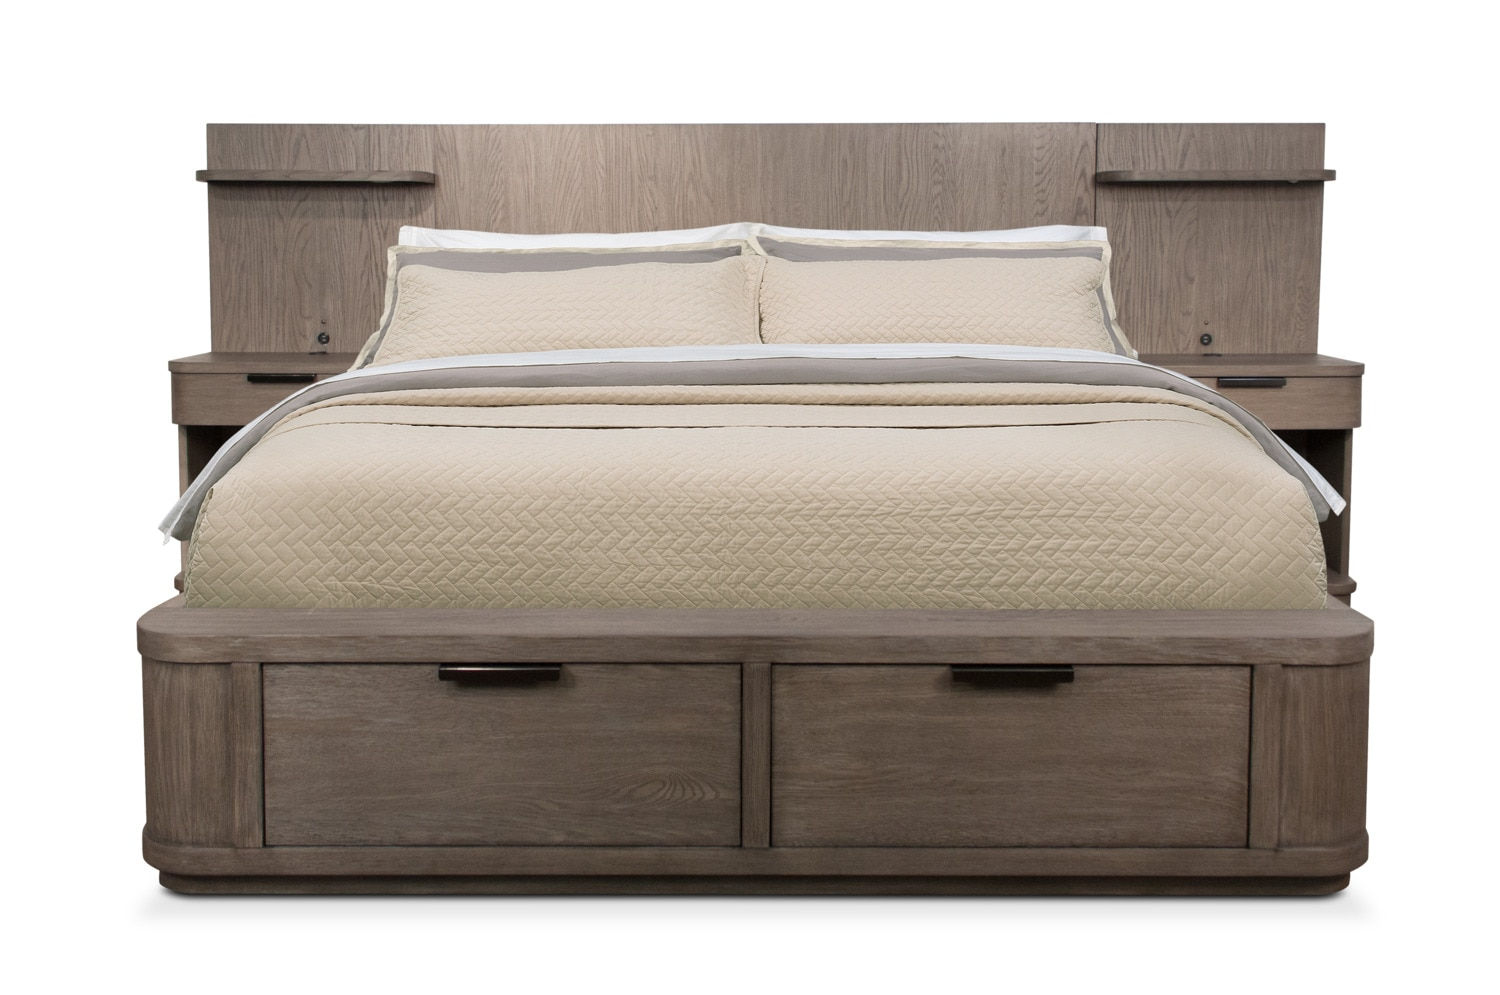 Bedroom Furniture - Malibu King Low Storage Wall Bed - Gray